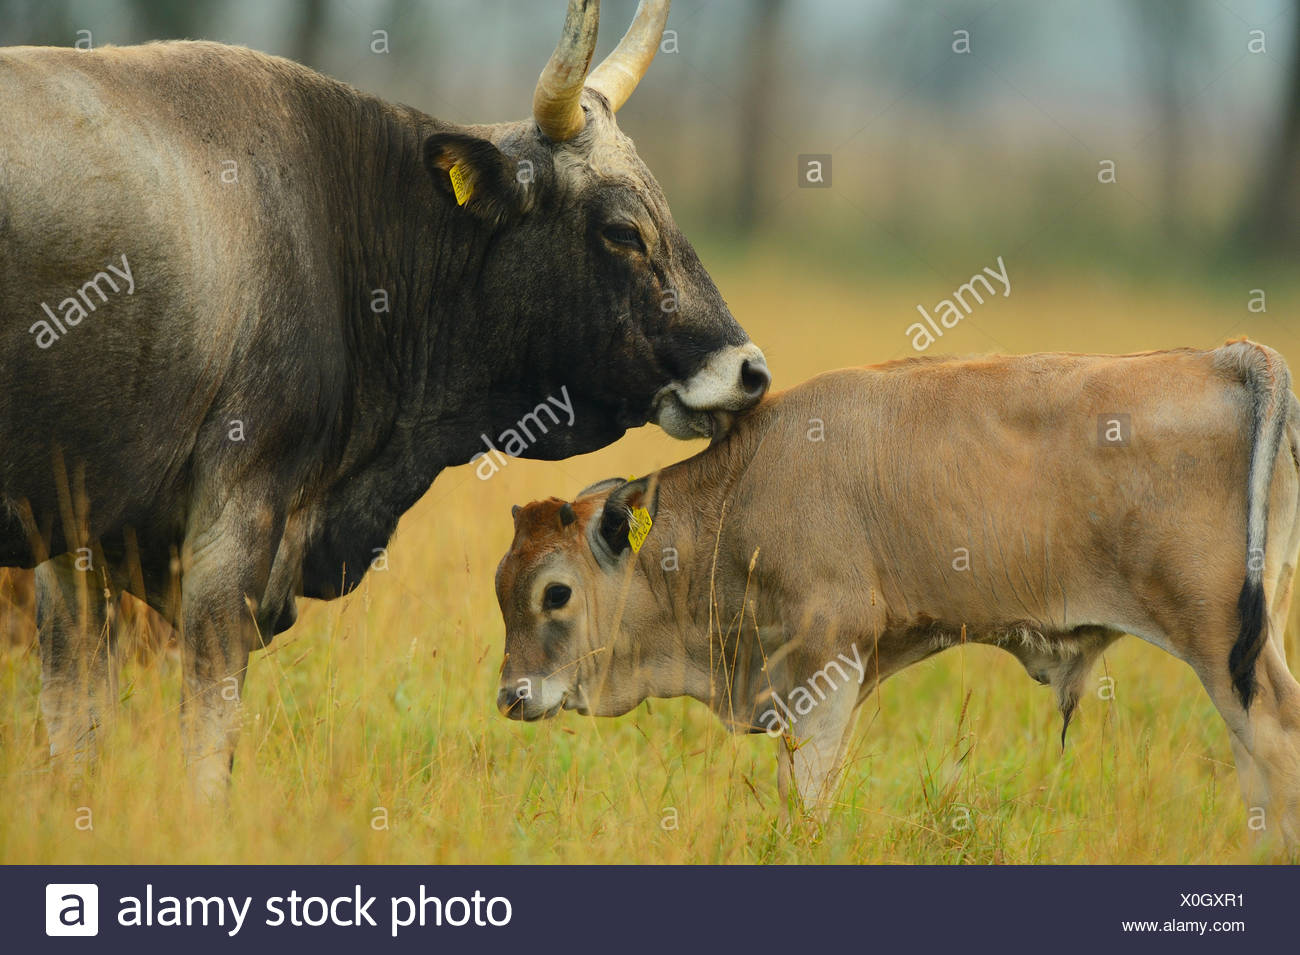 Maremmana primitive cow (Bos taurus) with crossbreed calf, Aurochs breeding site run by The Taurus Foundation, Keent Nature Reserve, The Netherlands. - Stock Image